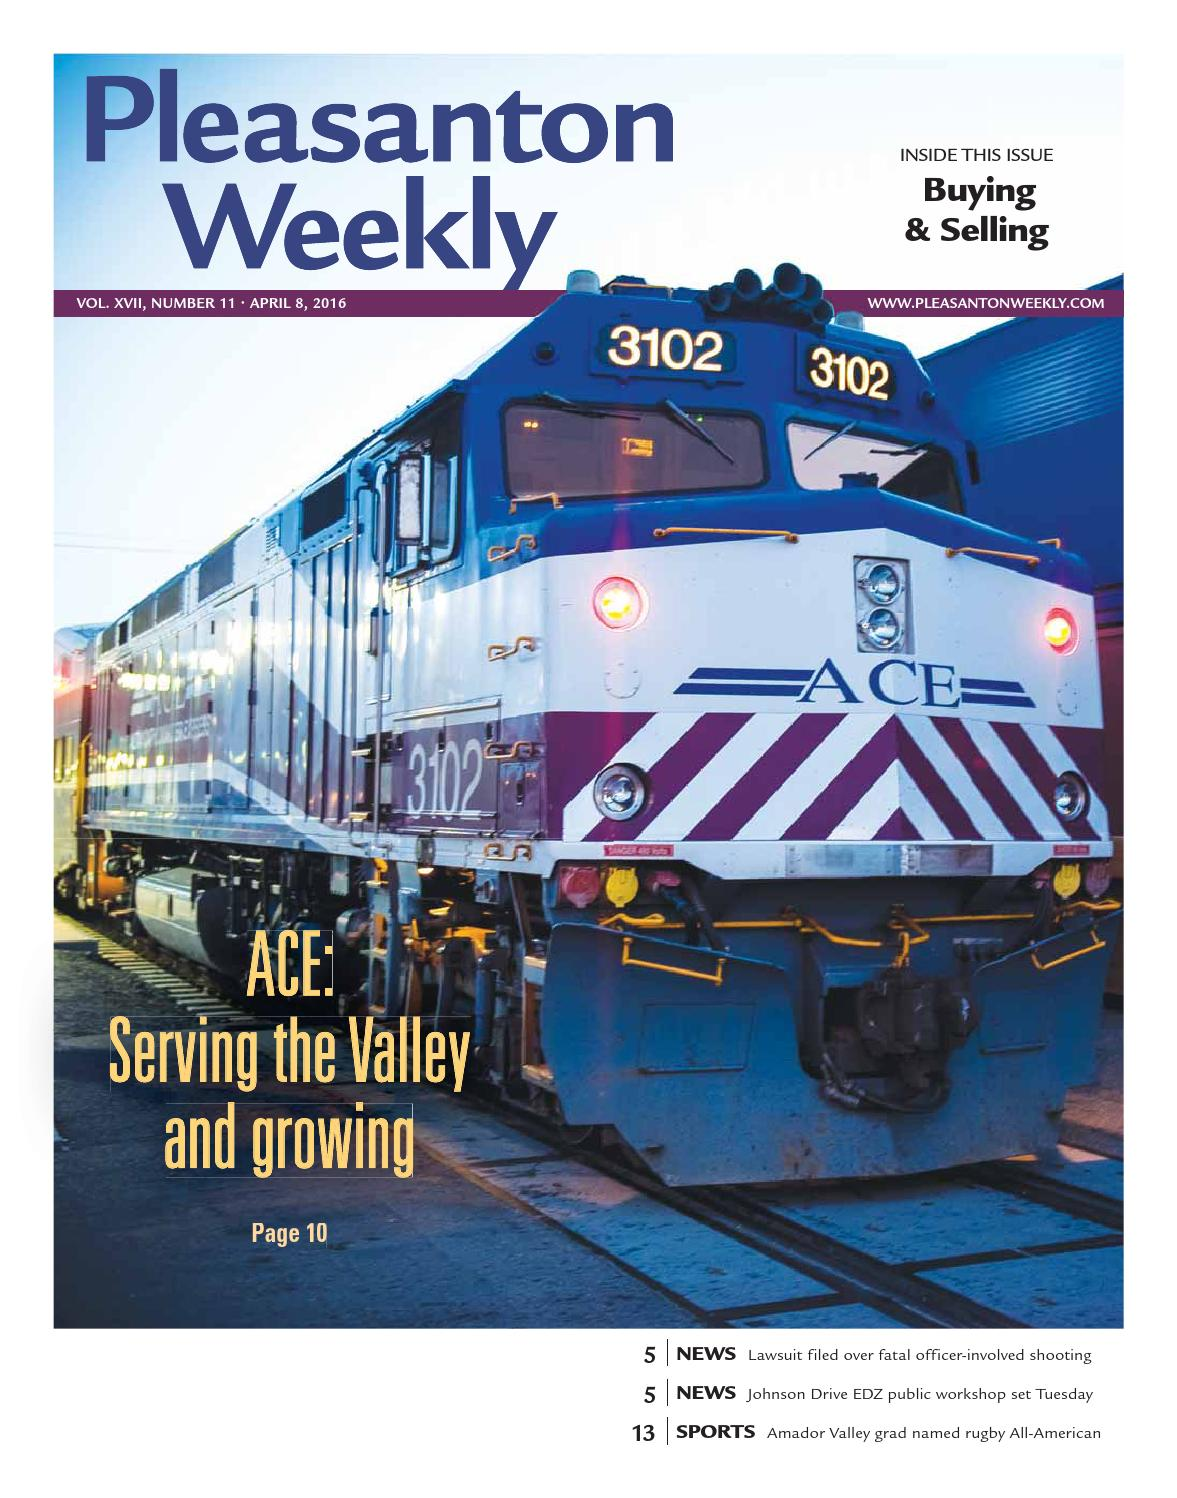 Pleasanton Weekly April 8, 2016 by Pleasanton Weekly - issuu